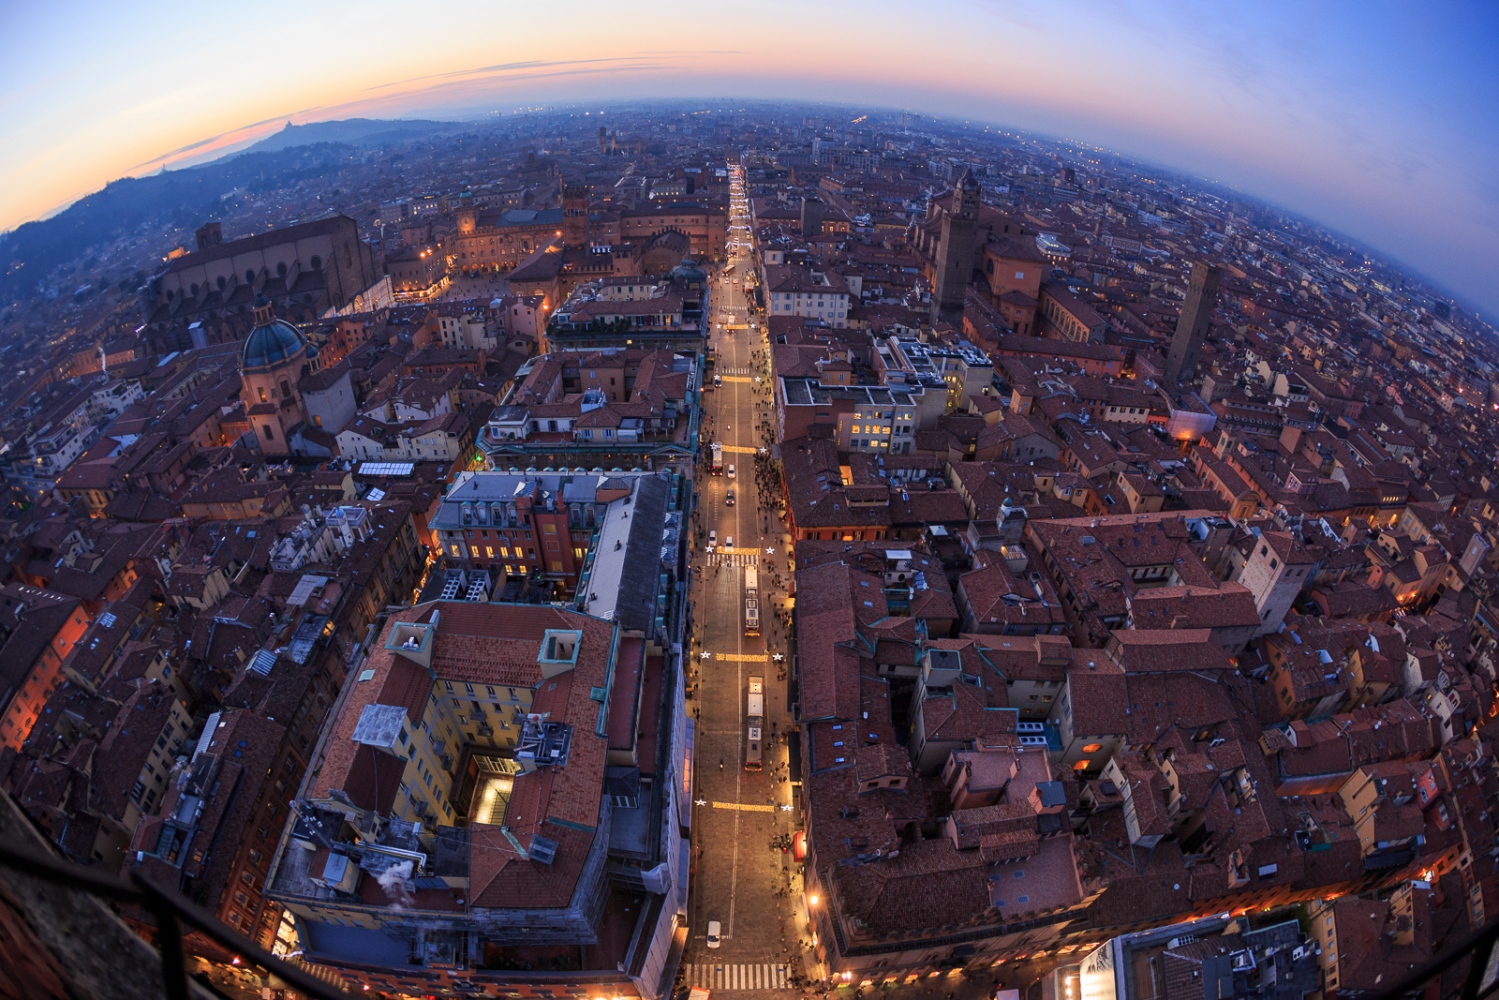 Christmas Atmosphere in Bologna A general view of Christmas lights on Rizzoli street as seen from the top of the Asinelli Tower.